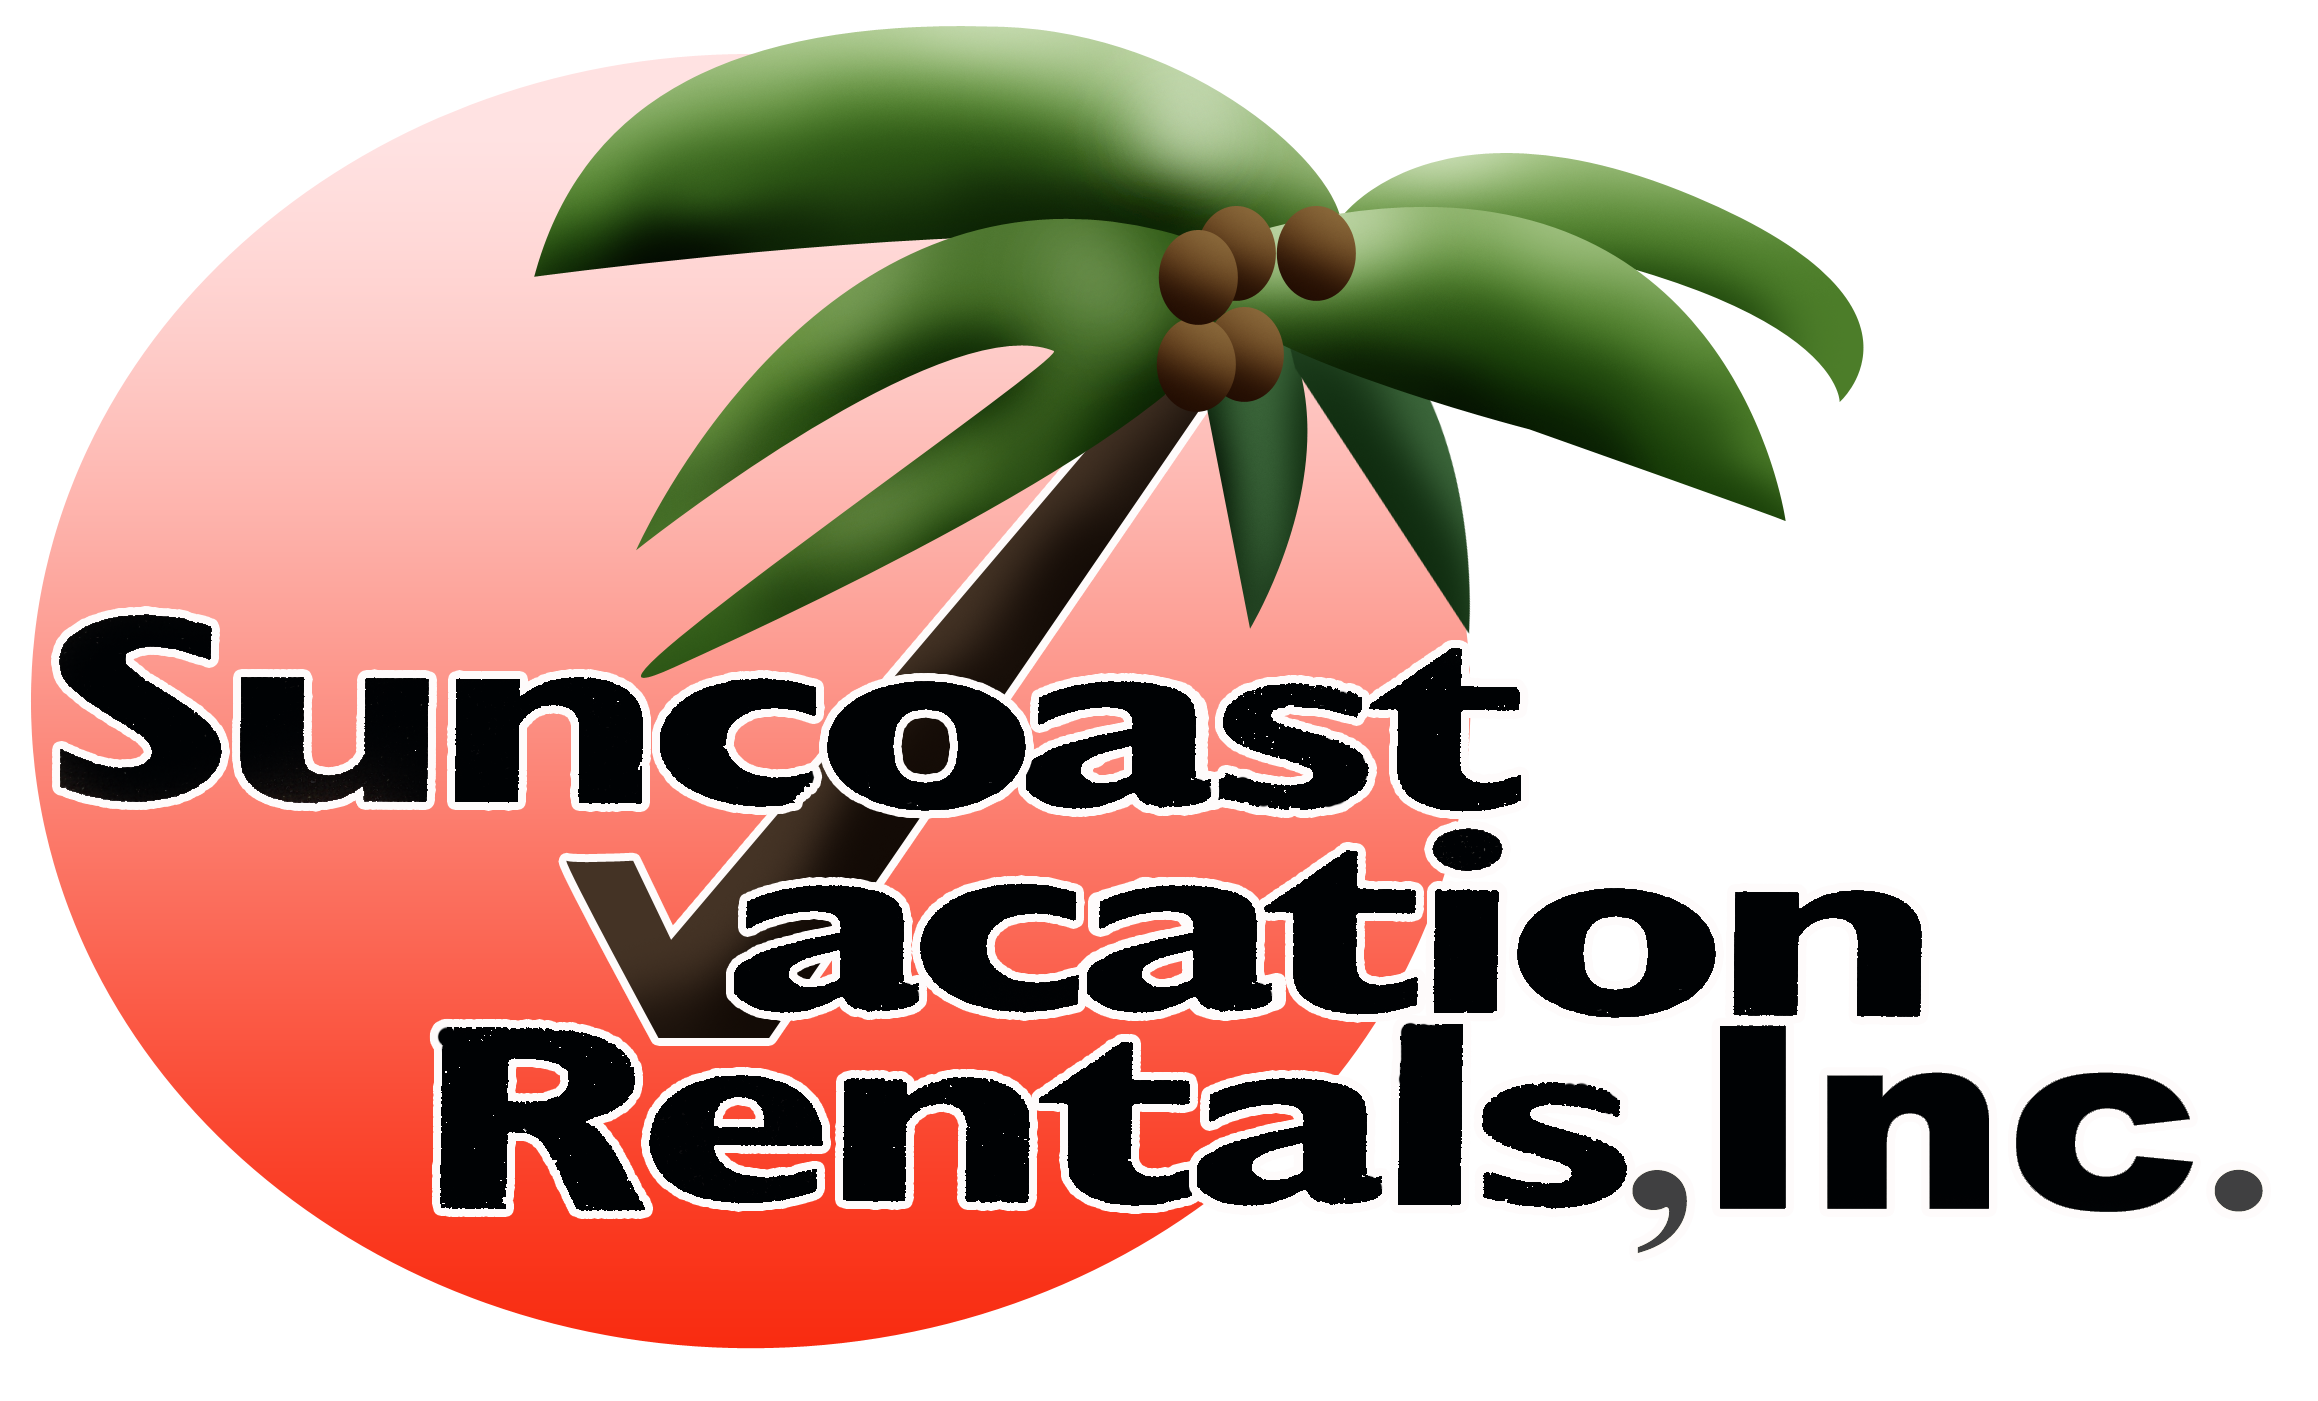 Welcome To Suncoast Vacation Rentals- Serving Tampa Bay and